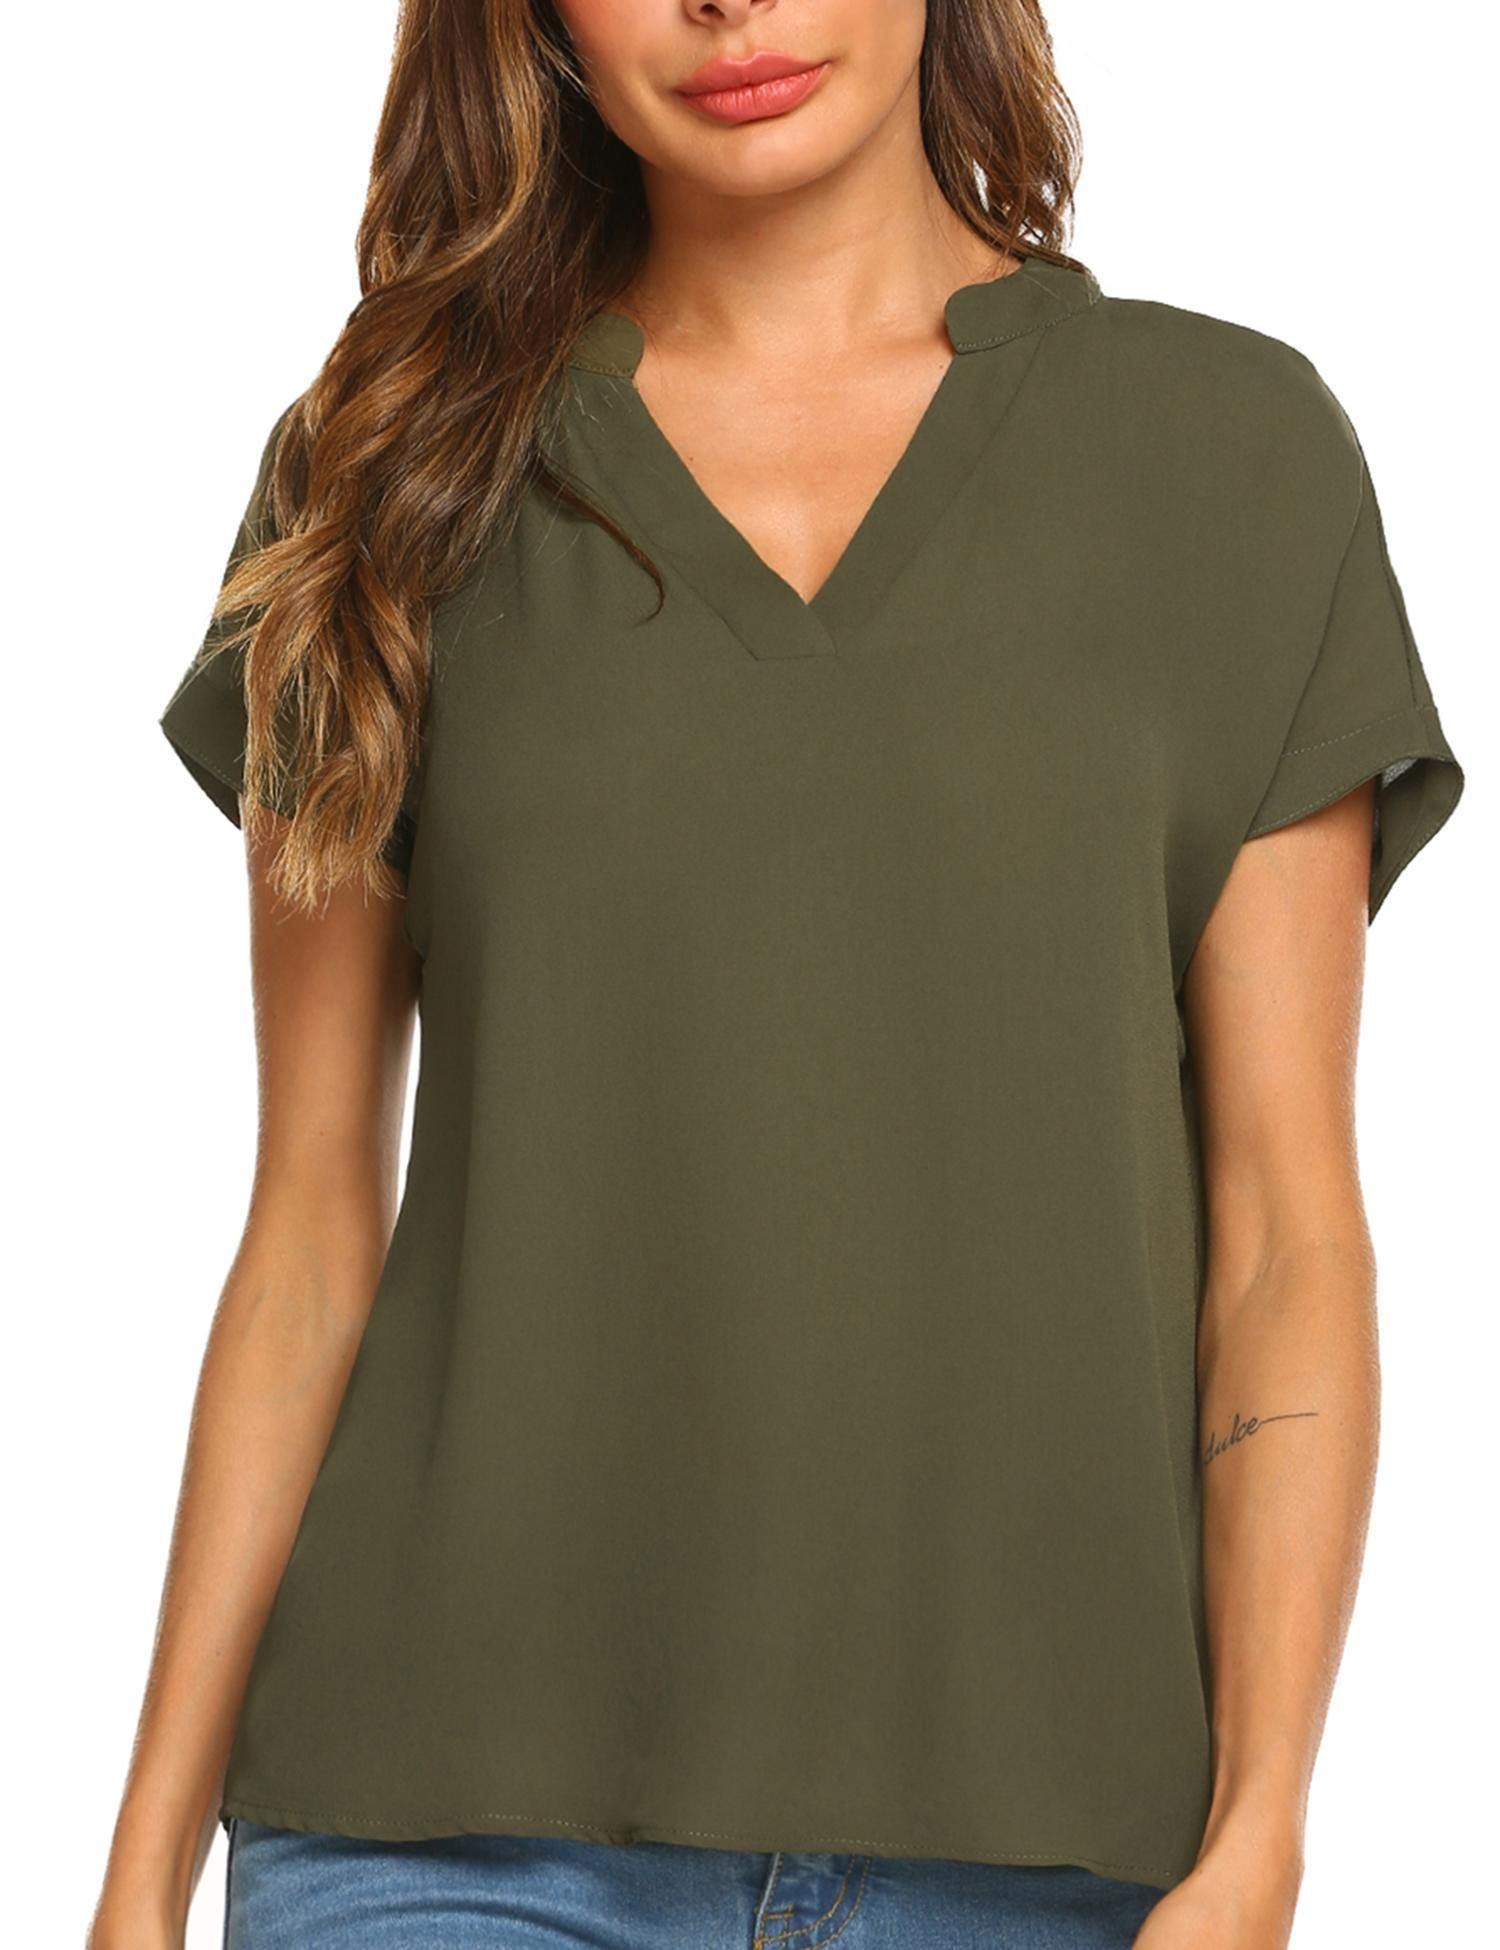 SOFT CHIFFON V-NECK WOMEN'S BLOUSE